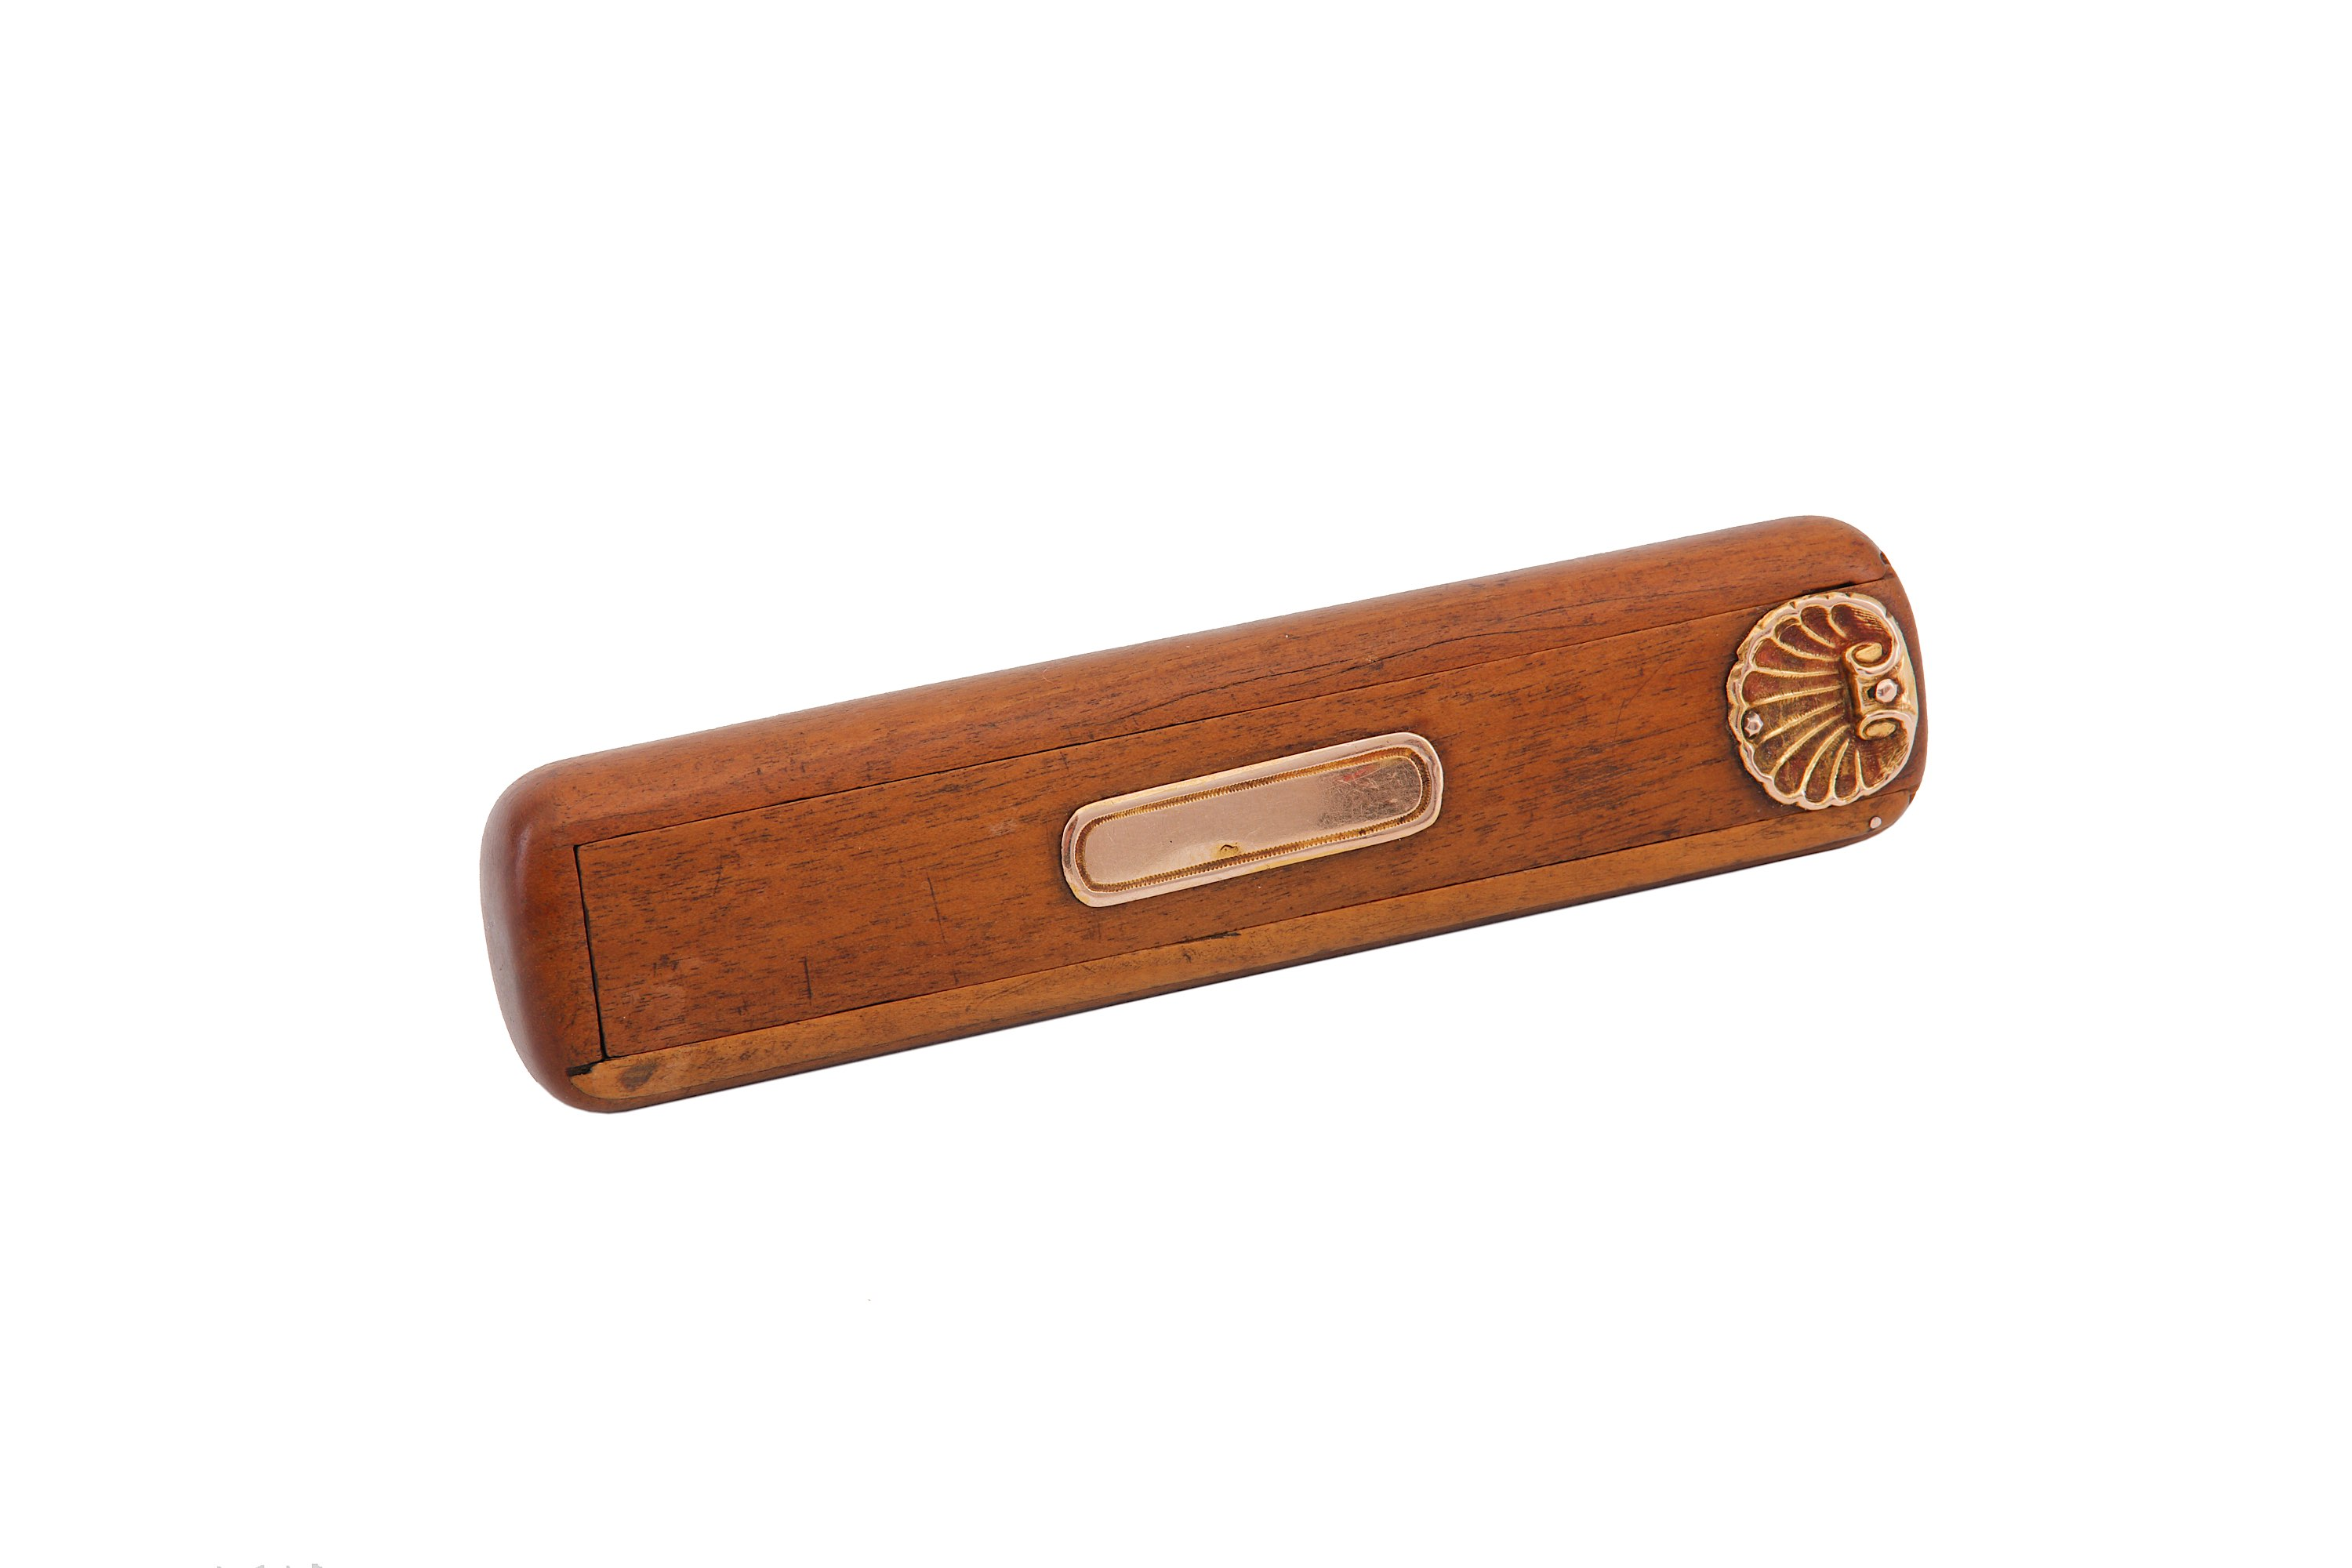 Lot 41 - A first half of 19th century French gold mounted fruitwood toothpick box, circa 1820-50